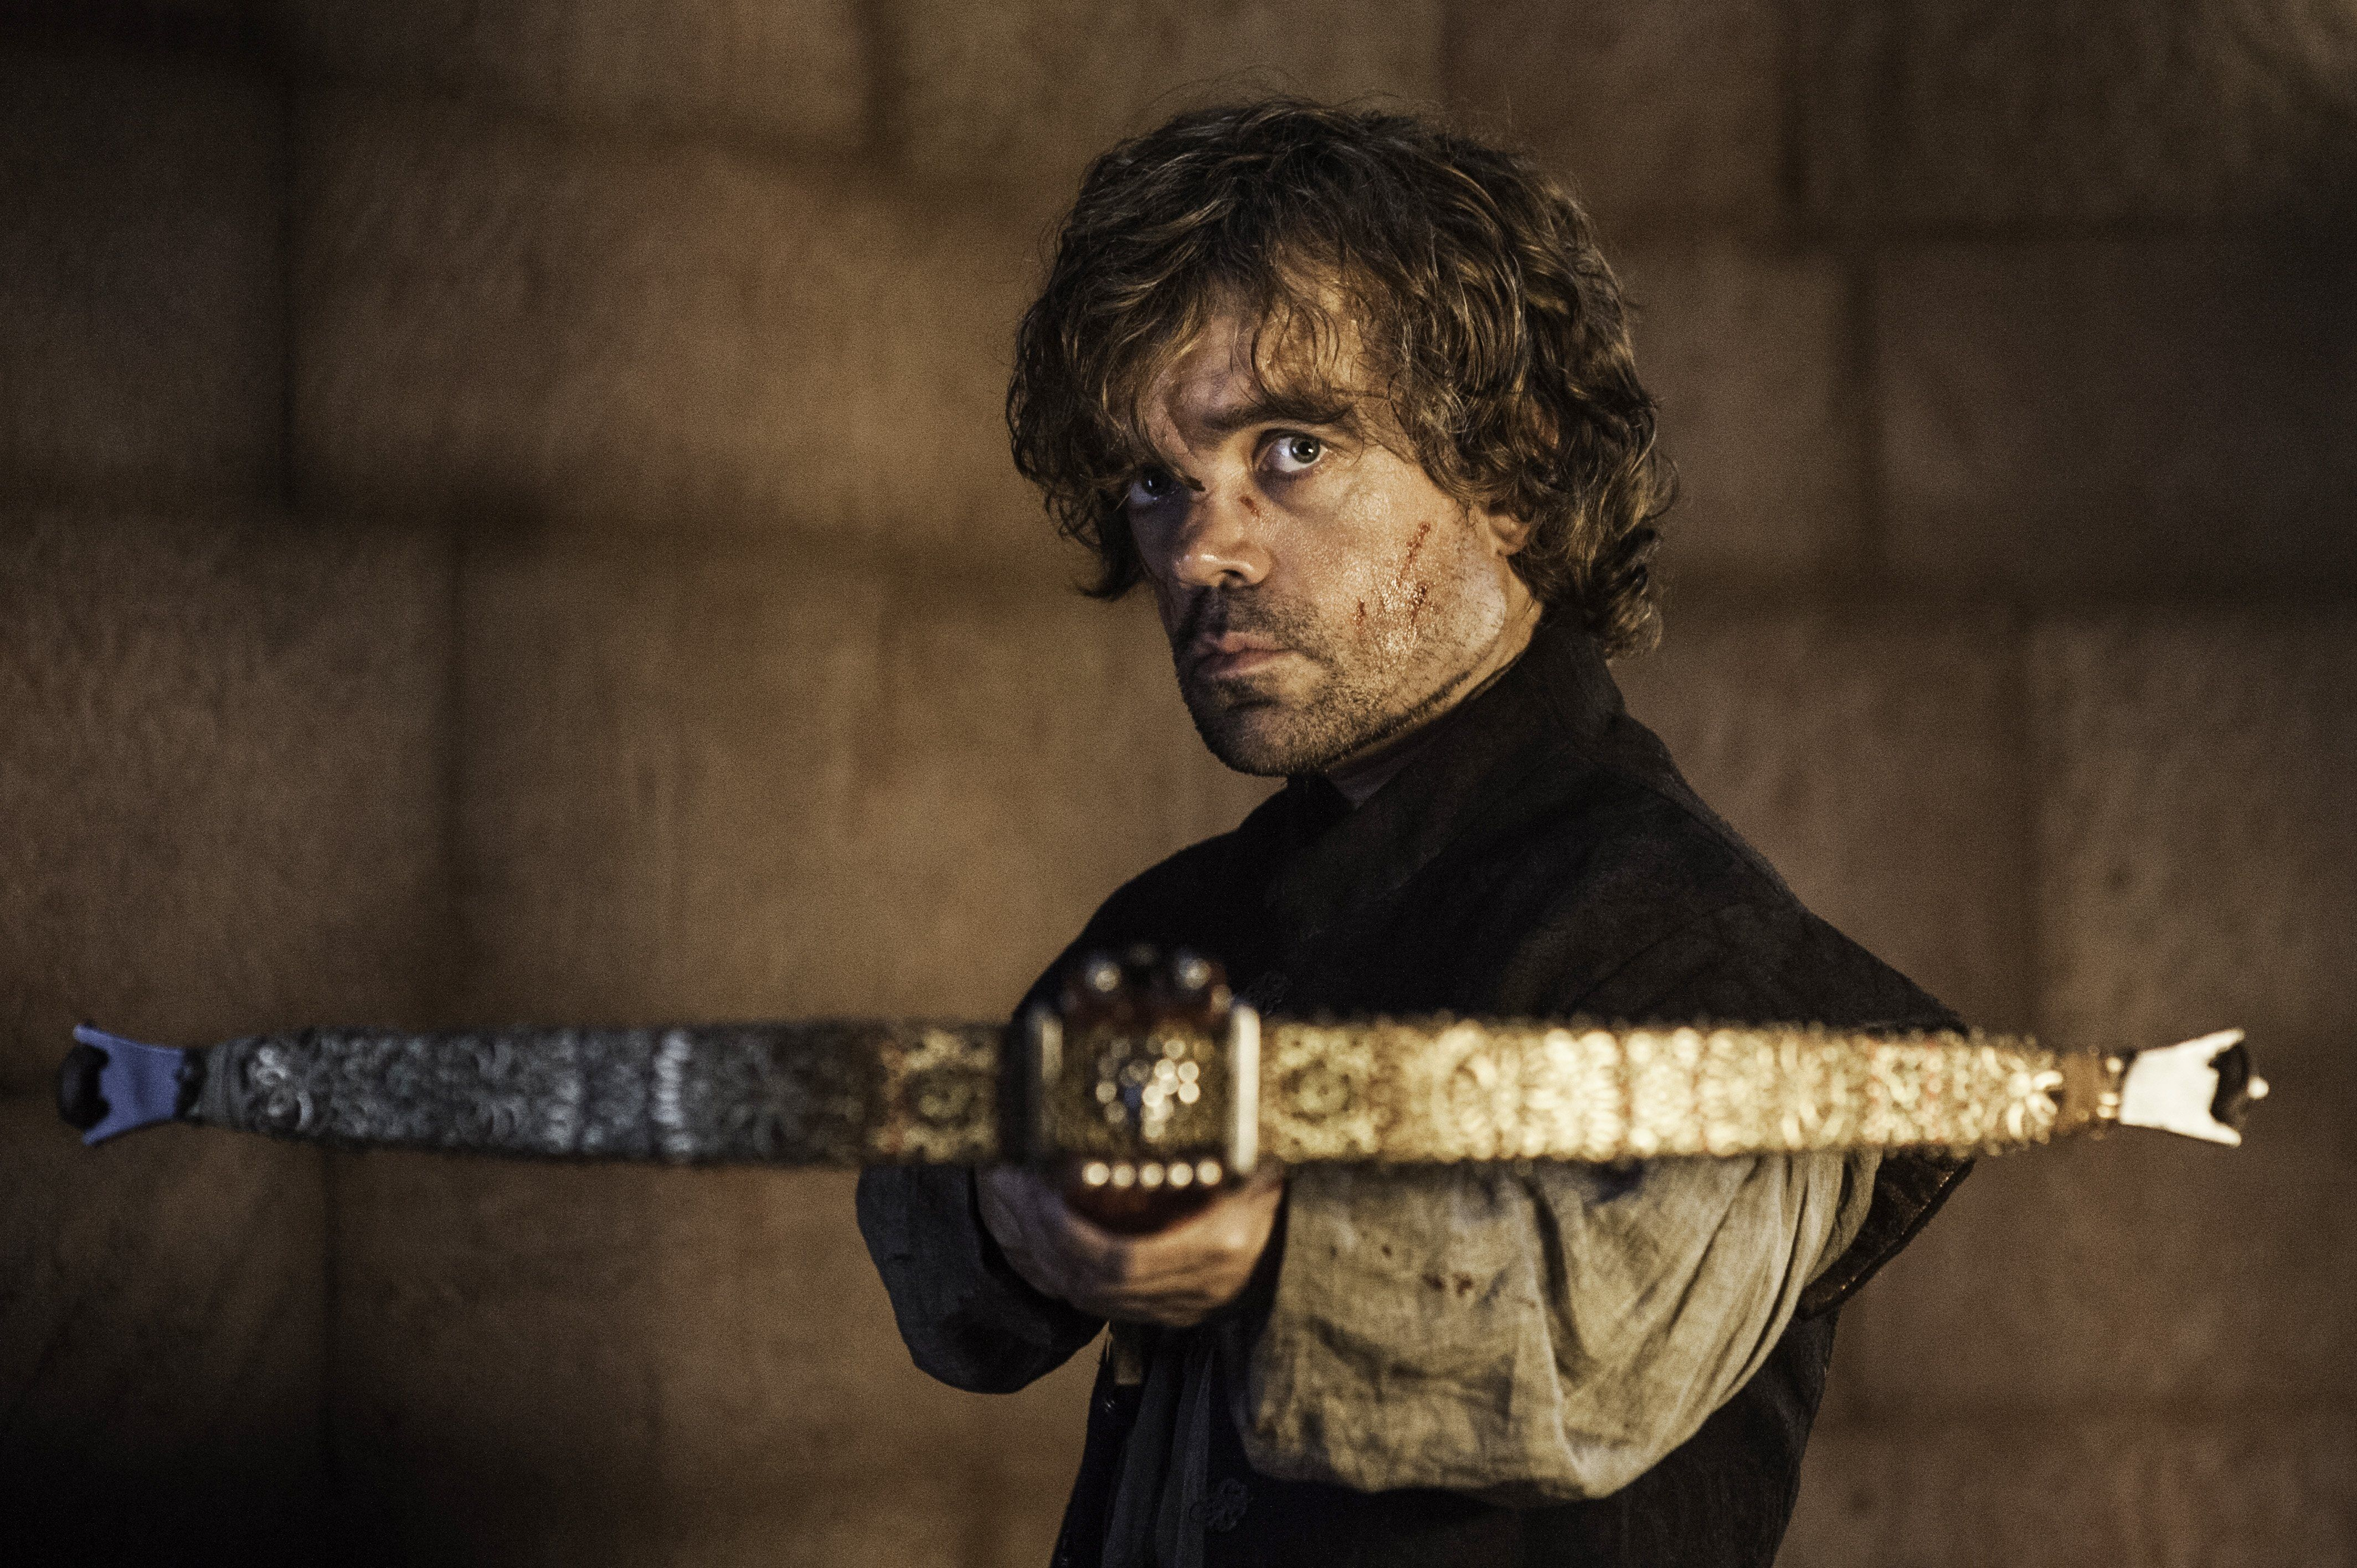 Game Of Thrones Star Peter Dinklage Hints At The Fate Of Tyrion